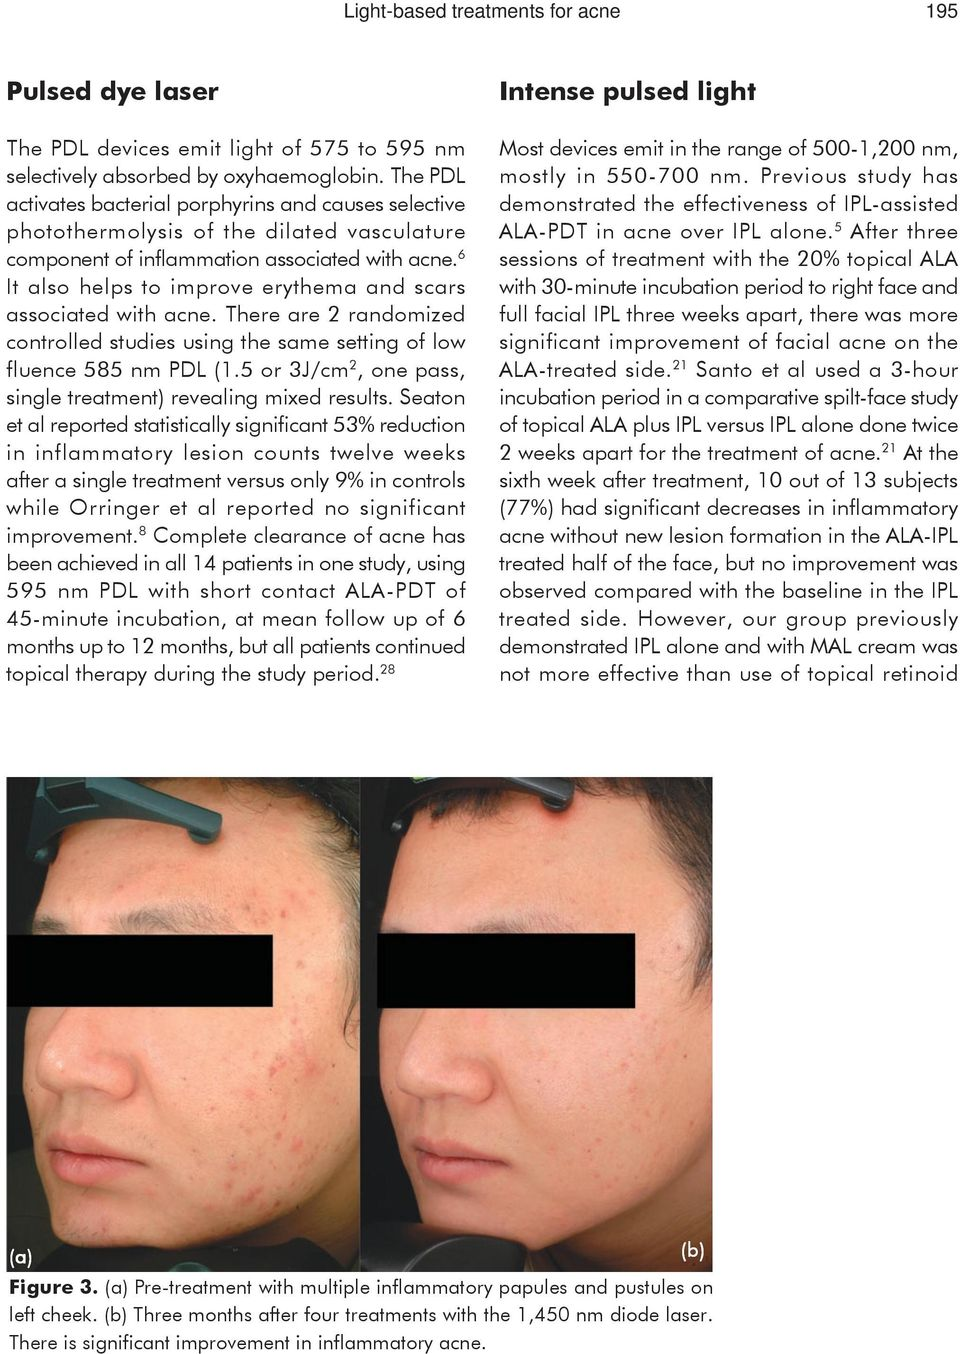 Review Article Light Based Treatments For Acne Introduction Pdf Dana A Treatment Device 6 It Also Helps To Improve Erythema And Scars Associated With There Are 2